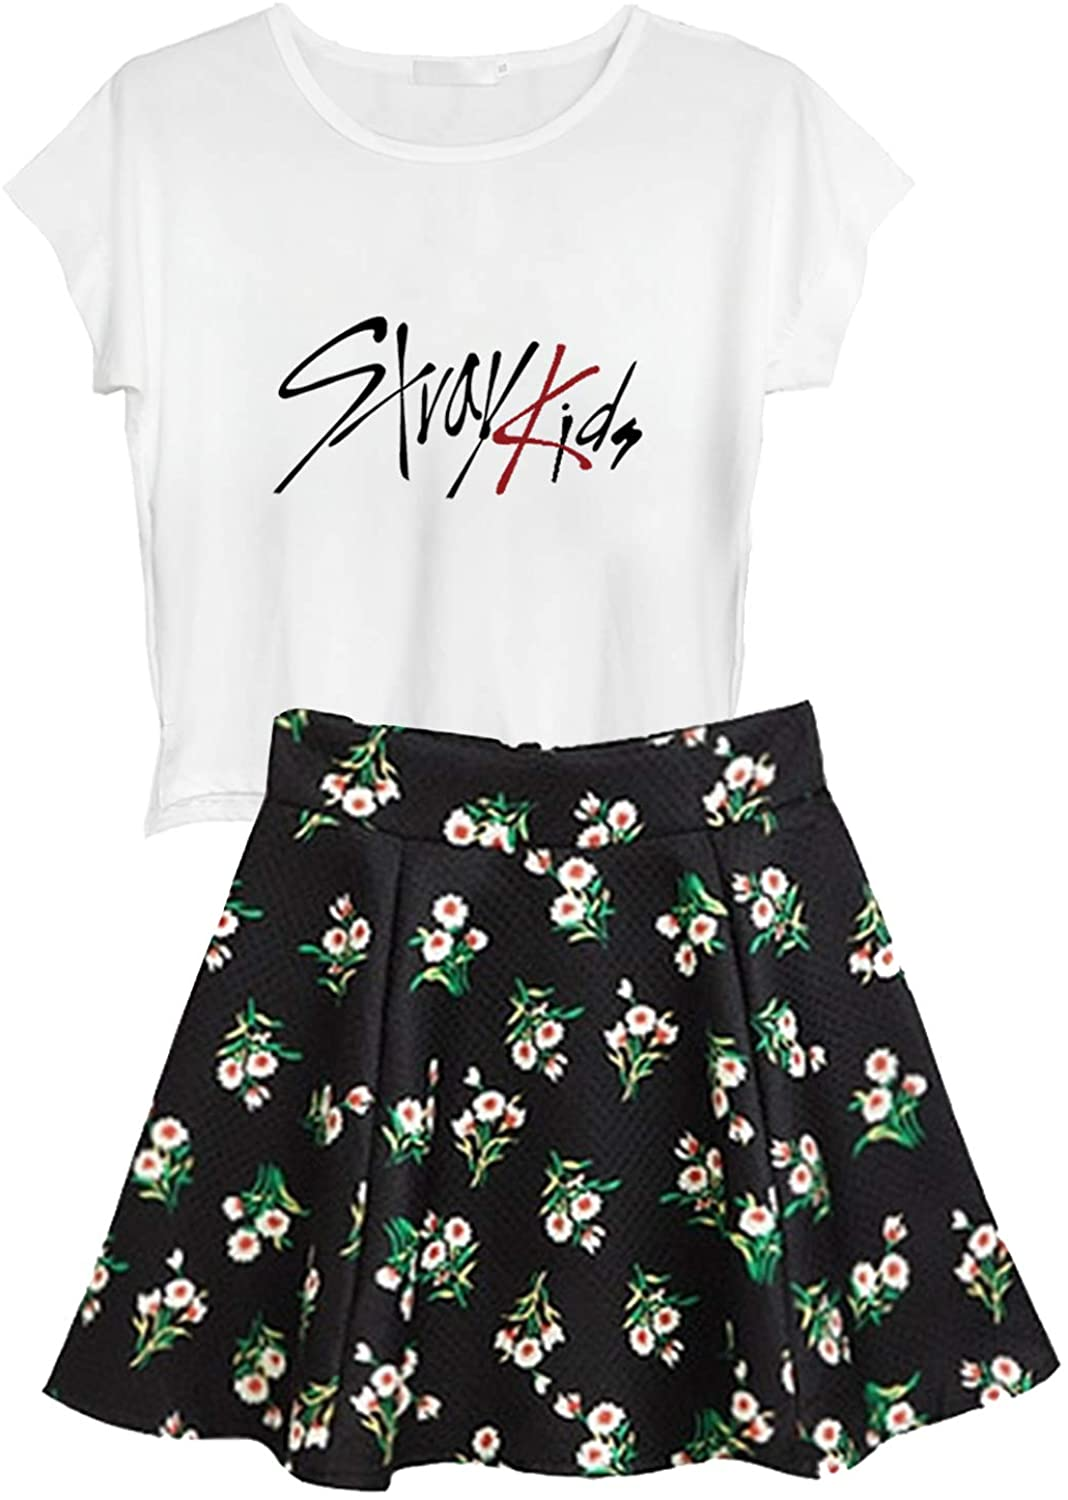 KPOP Ikon Seventeen Stray Kids Twice + Floral Bombing OFFicial store new work One Skir Top Wanna